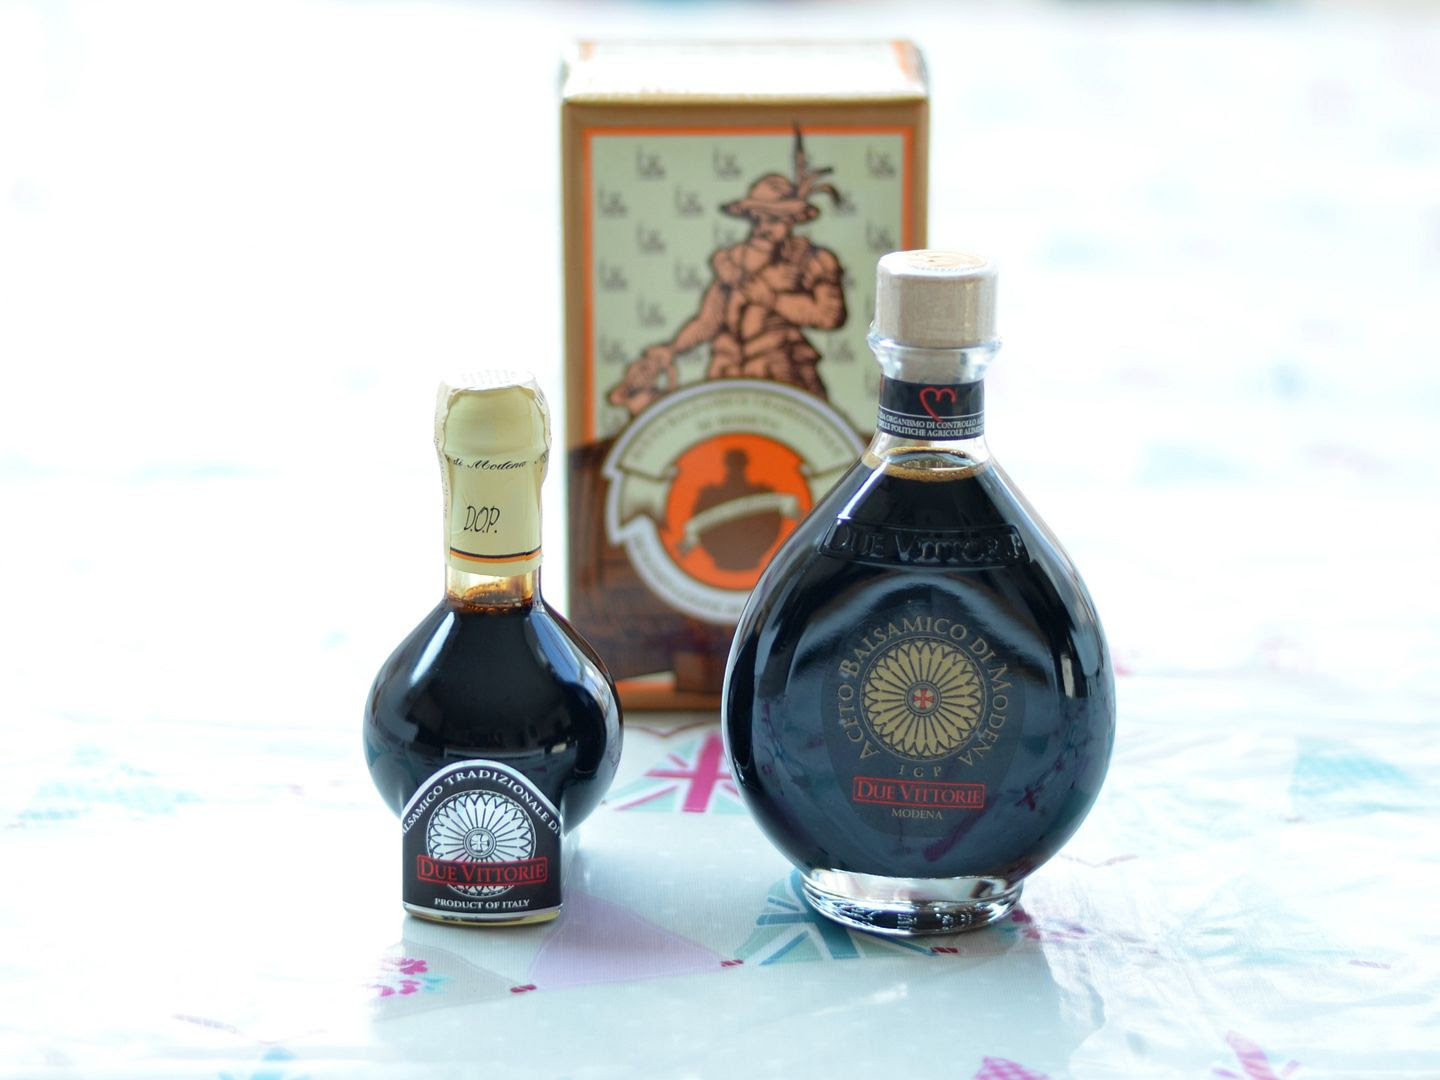 Due Vittorie Balsamic